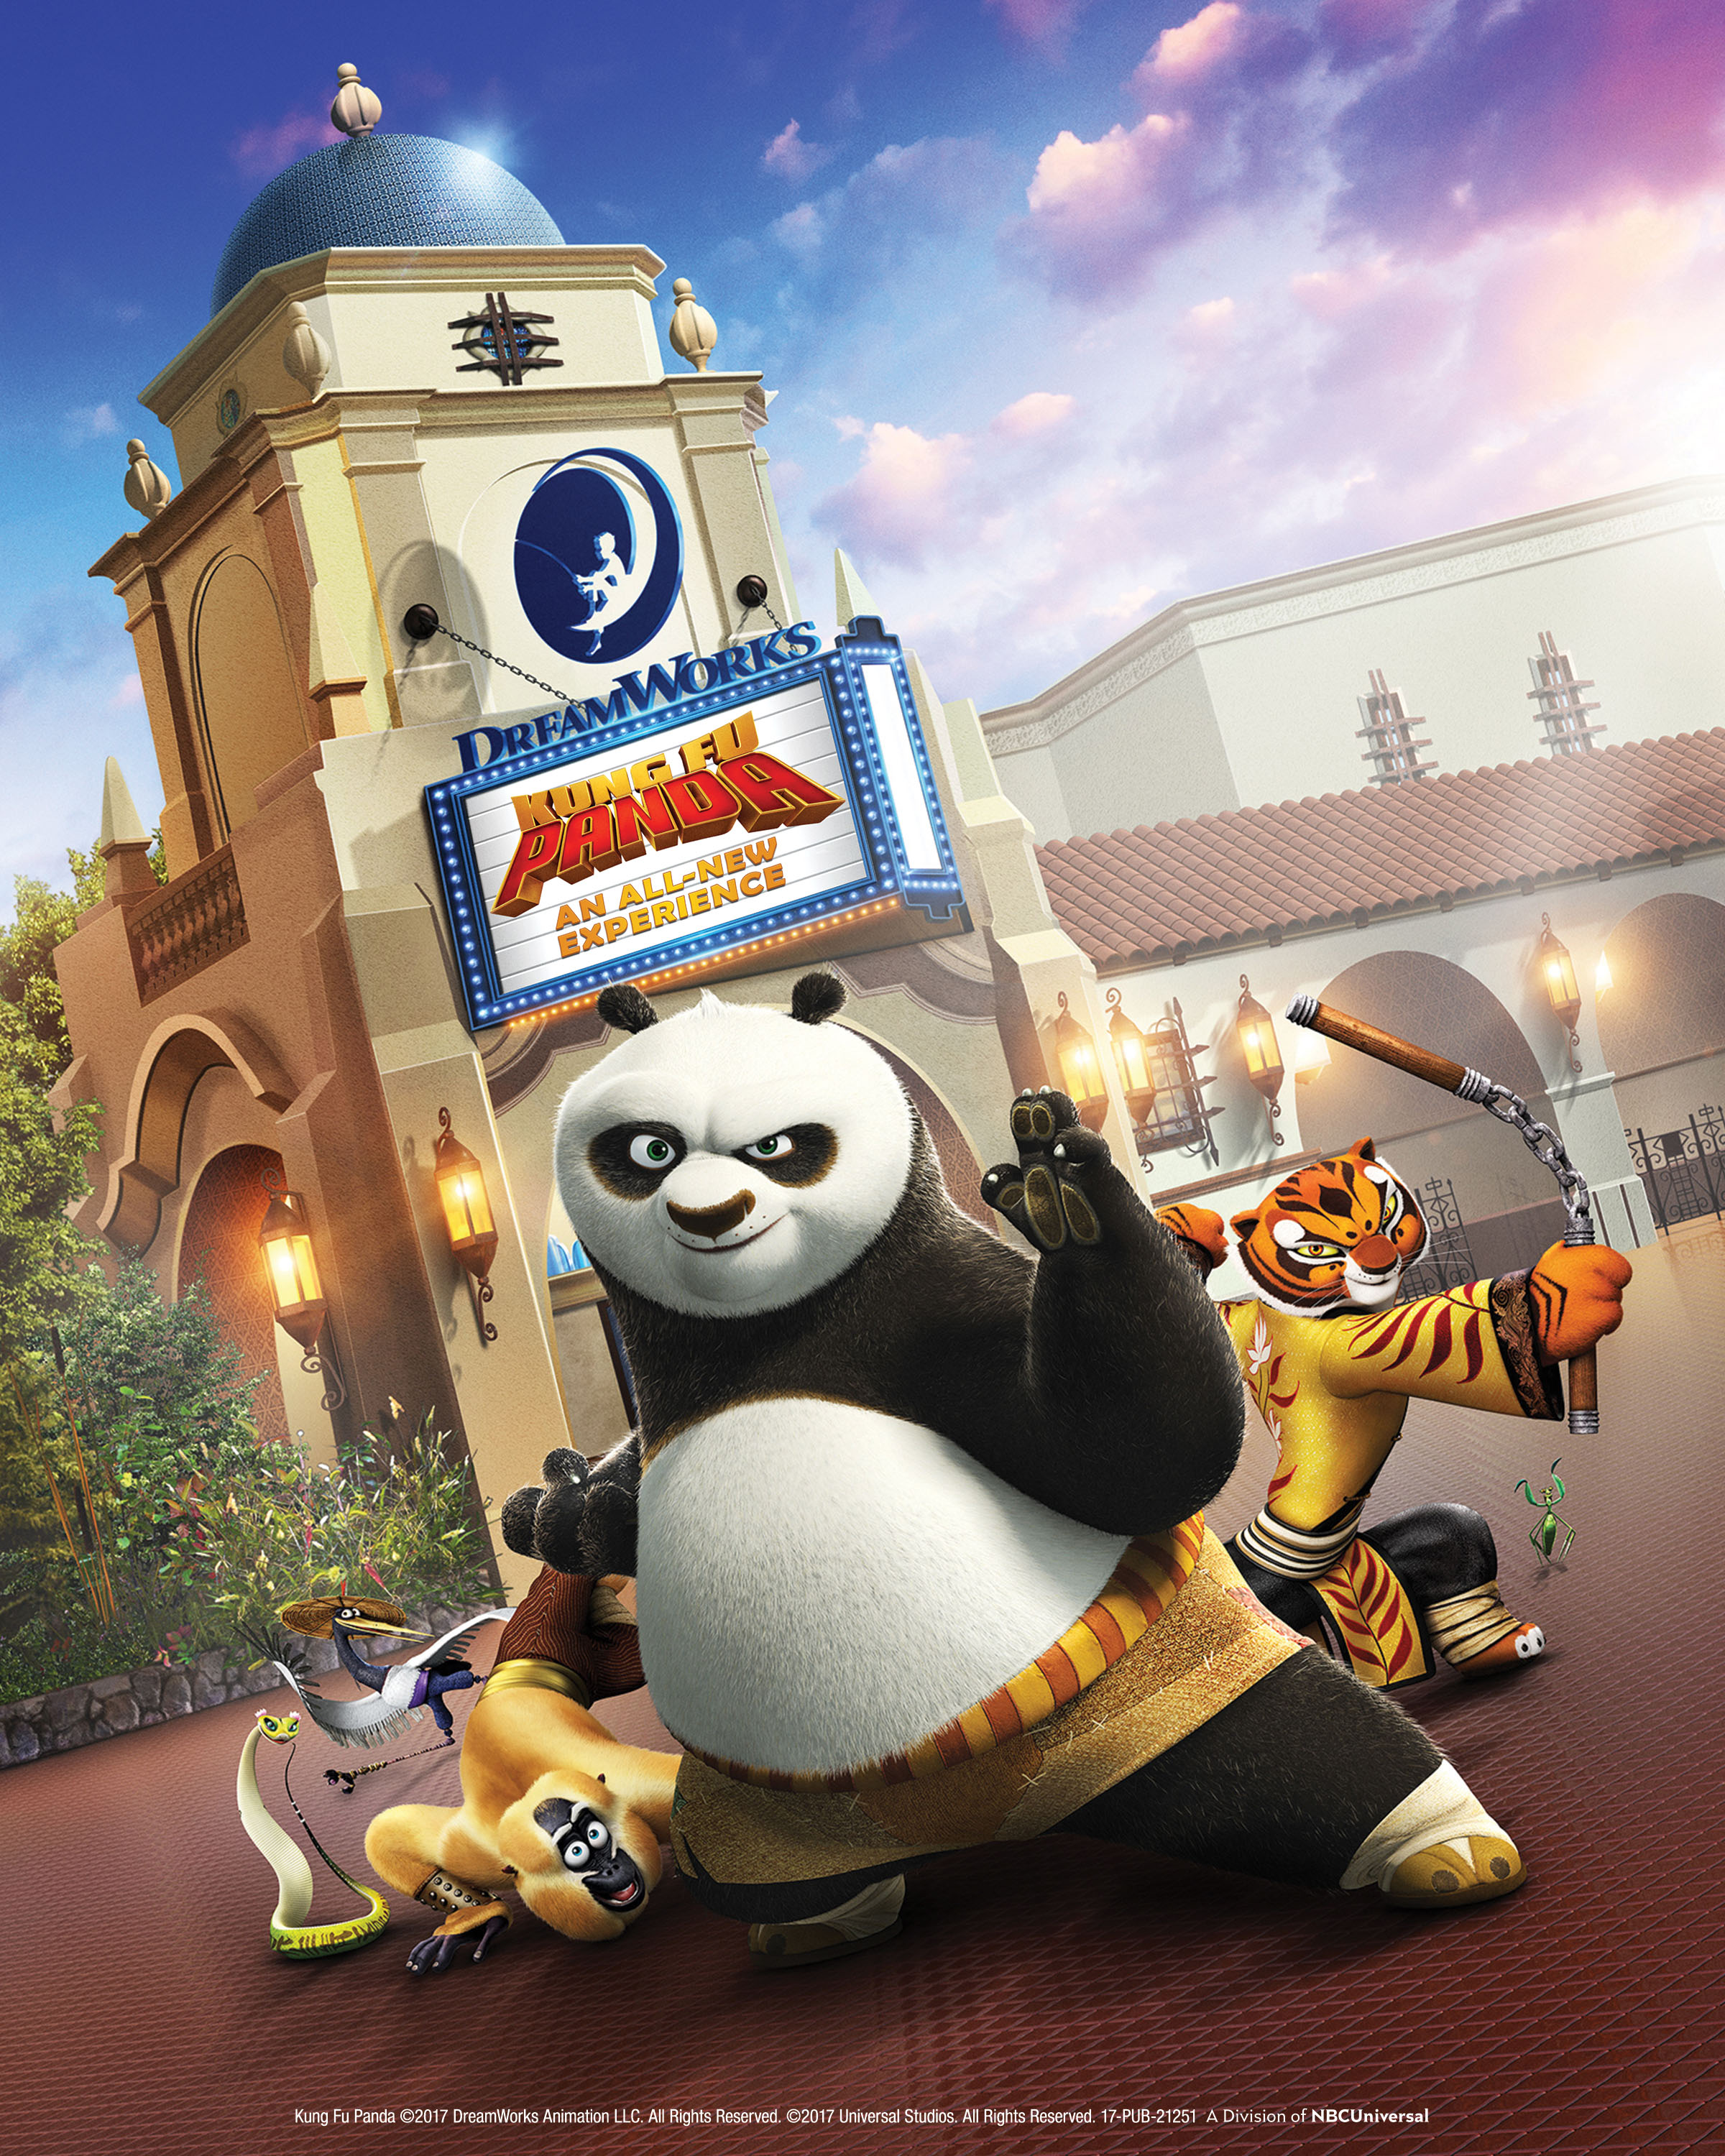 DreamWorks Theatre at Universal Studios Hollywood